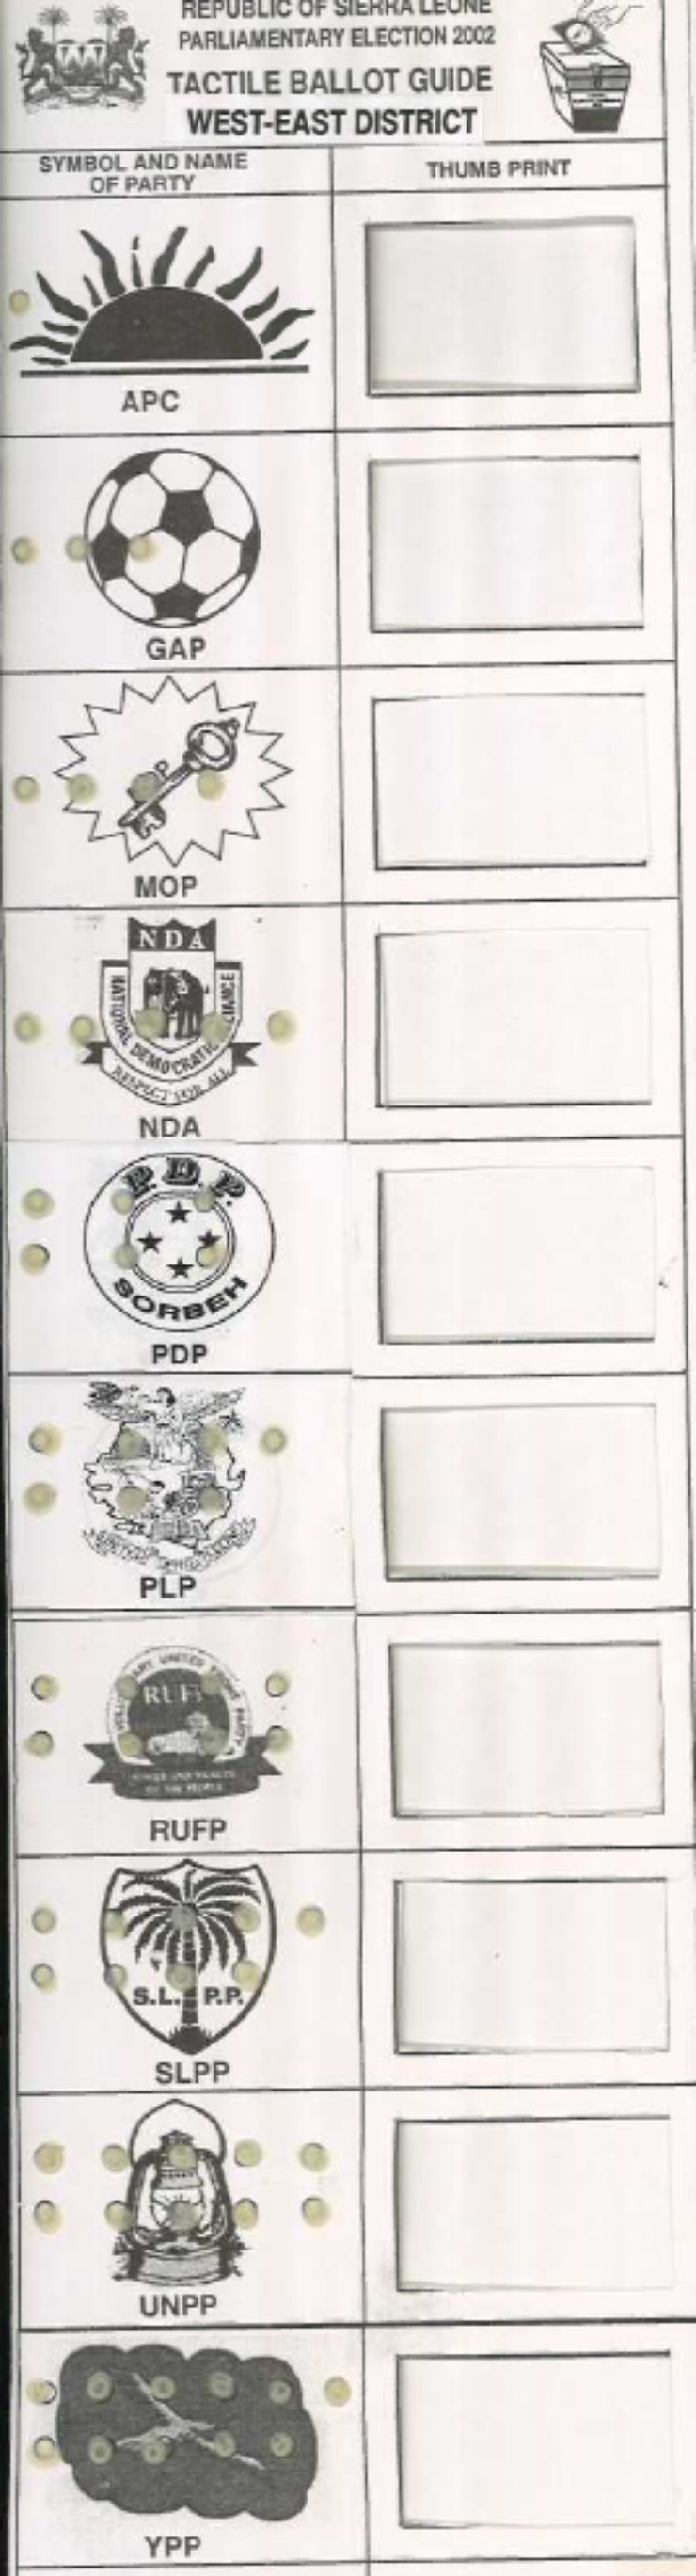 A close-up of a tactile ballot guide, with two columns. On the left are raised symbols (a sun, a key, etc.) and on the right is a raised pad for a thumbprint.